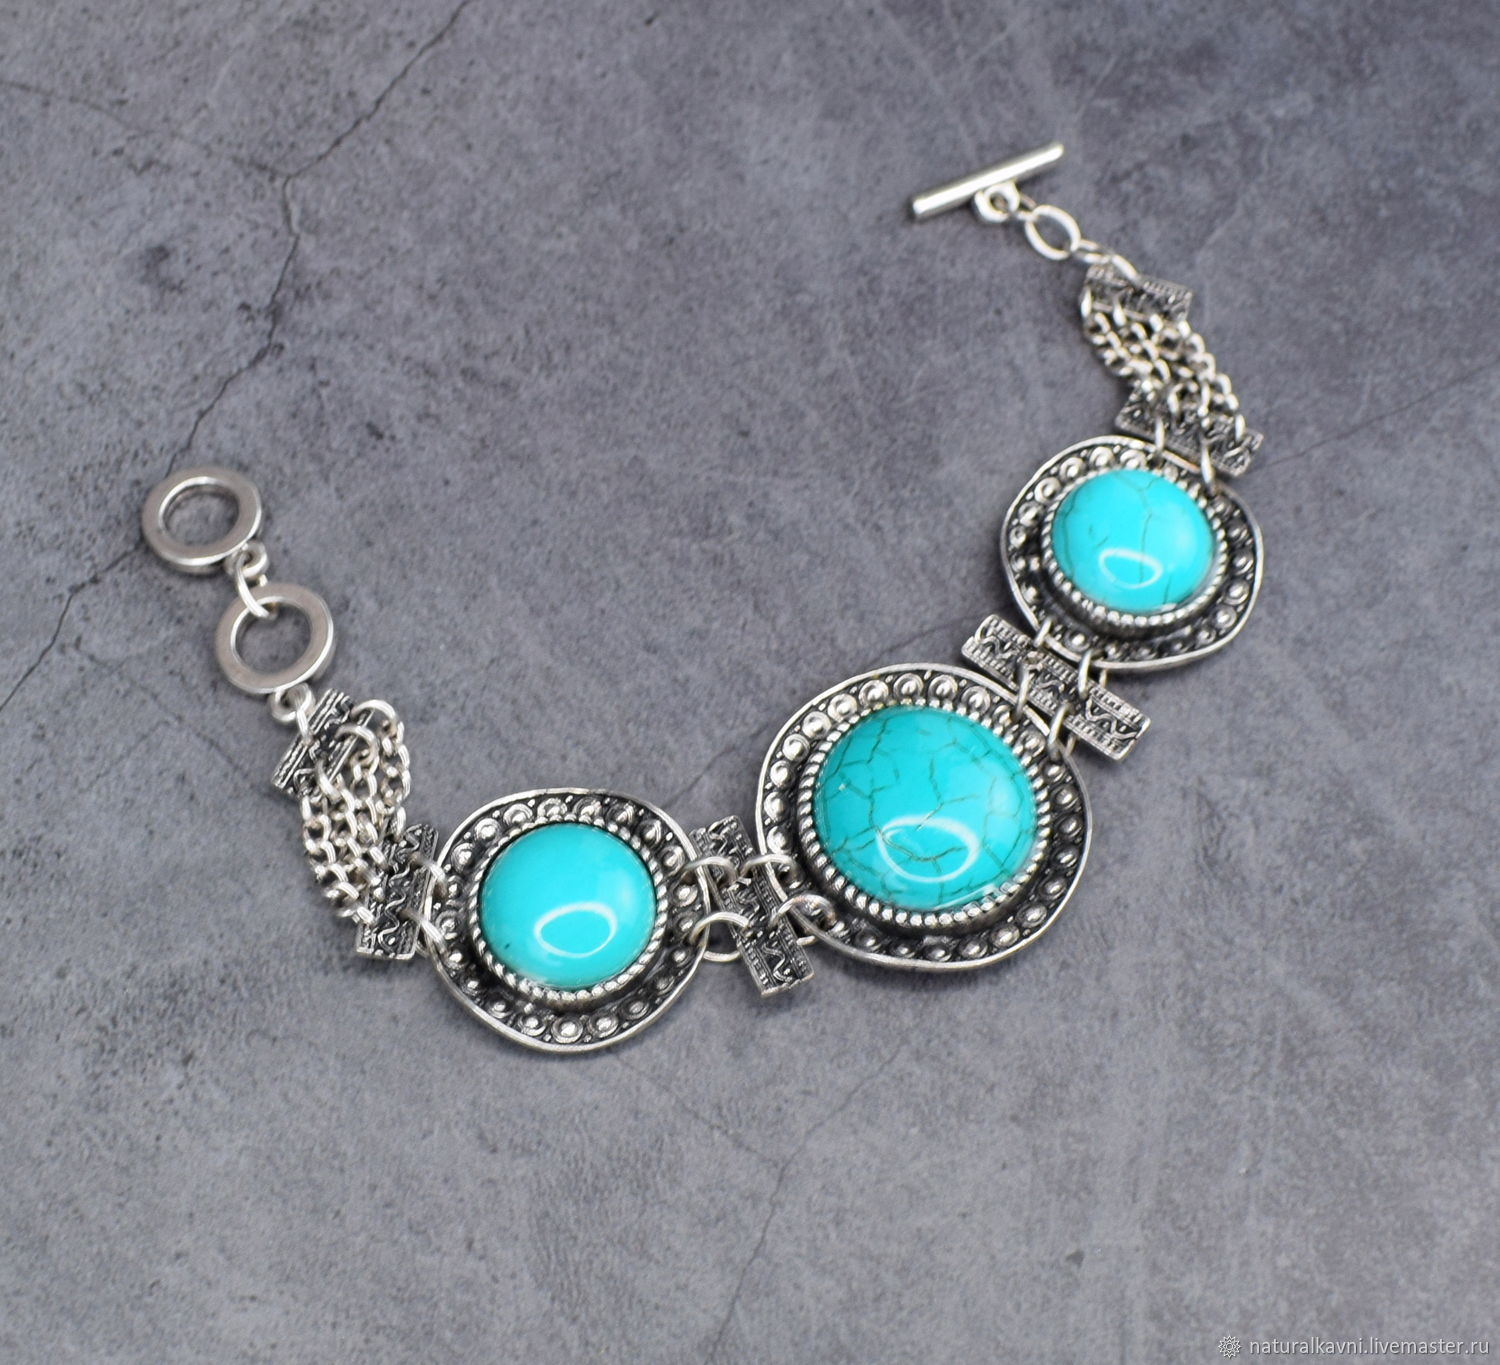 Bracelet tinted torquent a turquoise, Bead bracelet, Moscow,  Фото №1